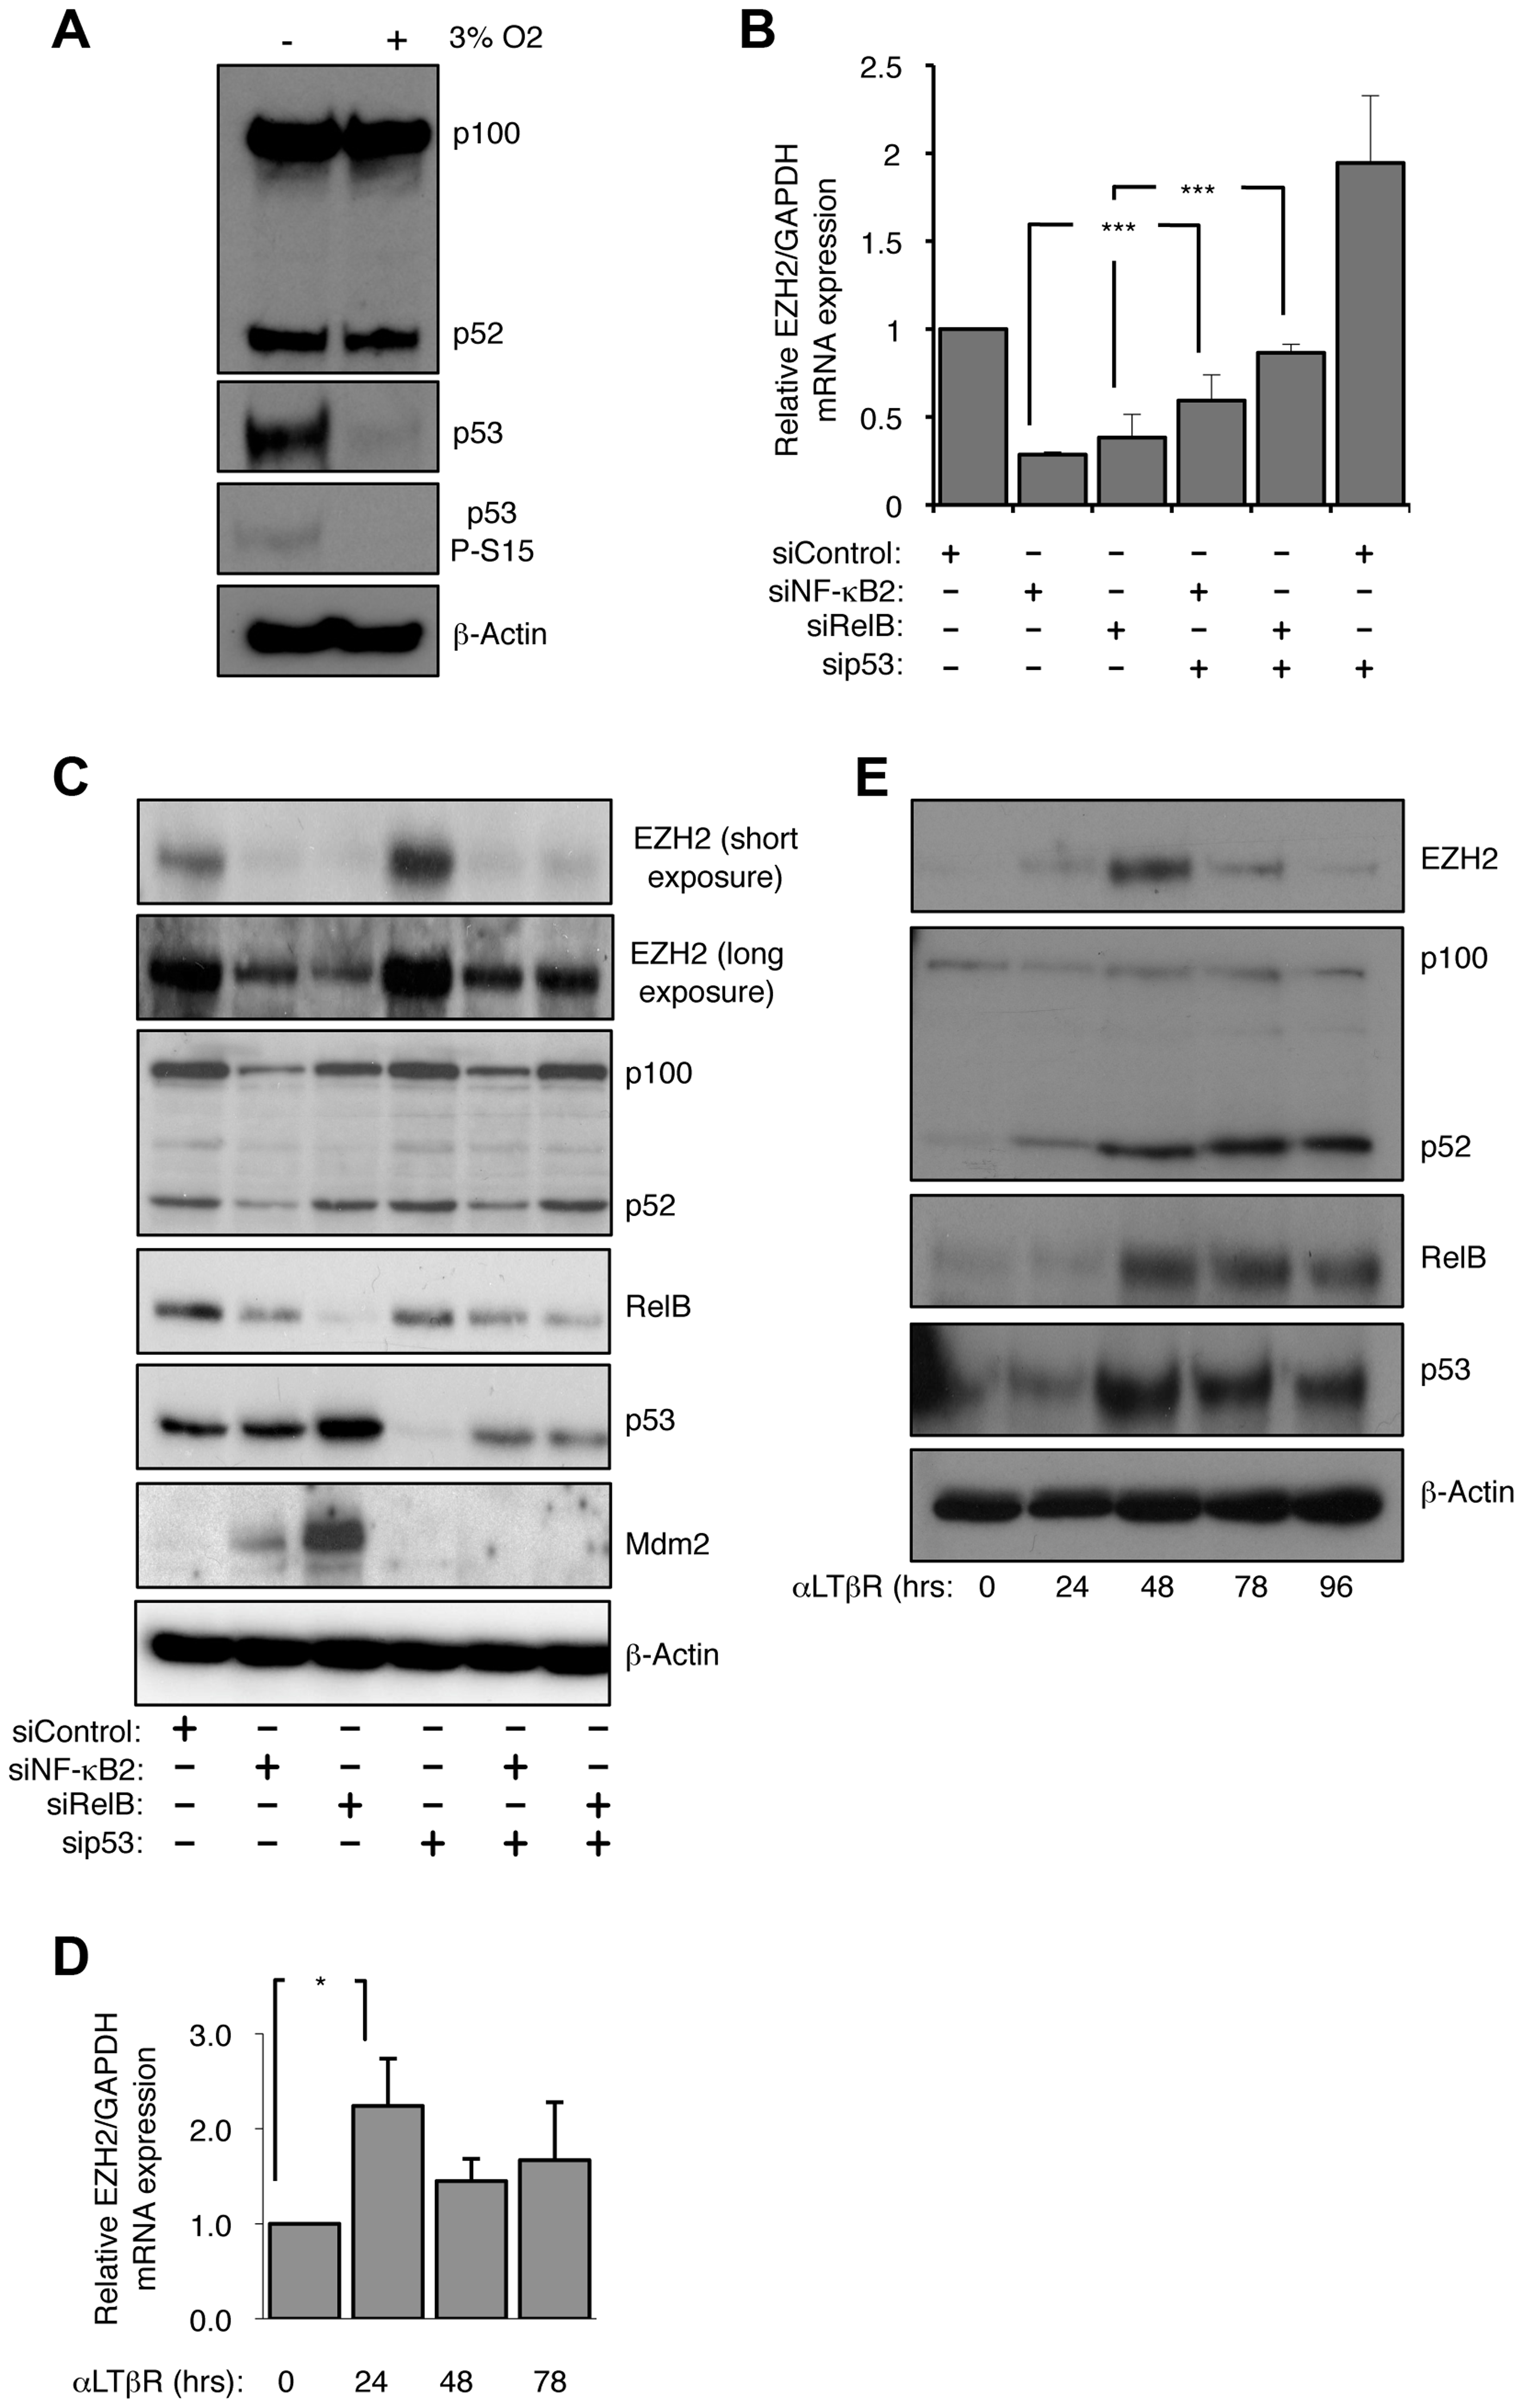 EZH2 is an NF-κB regulated target gene.